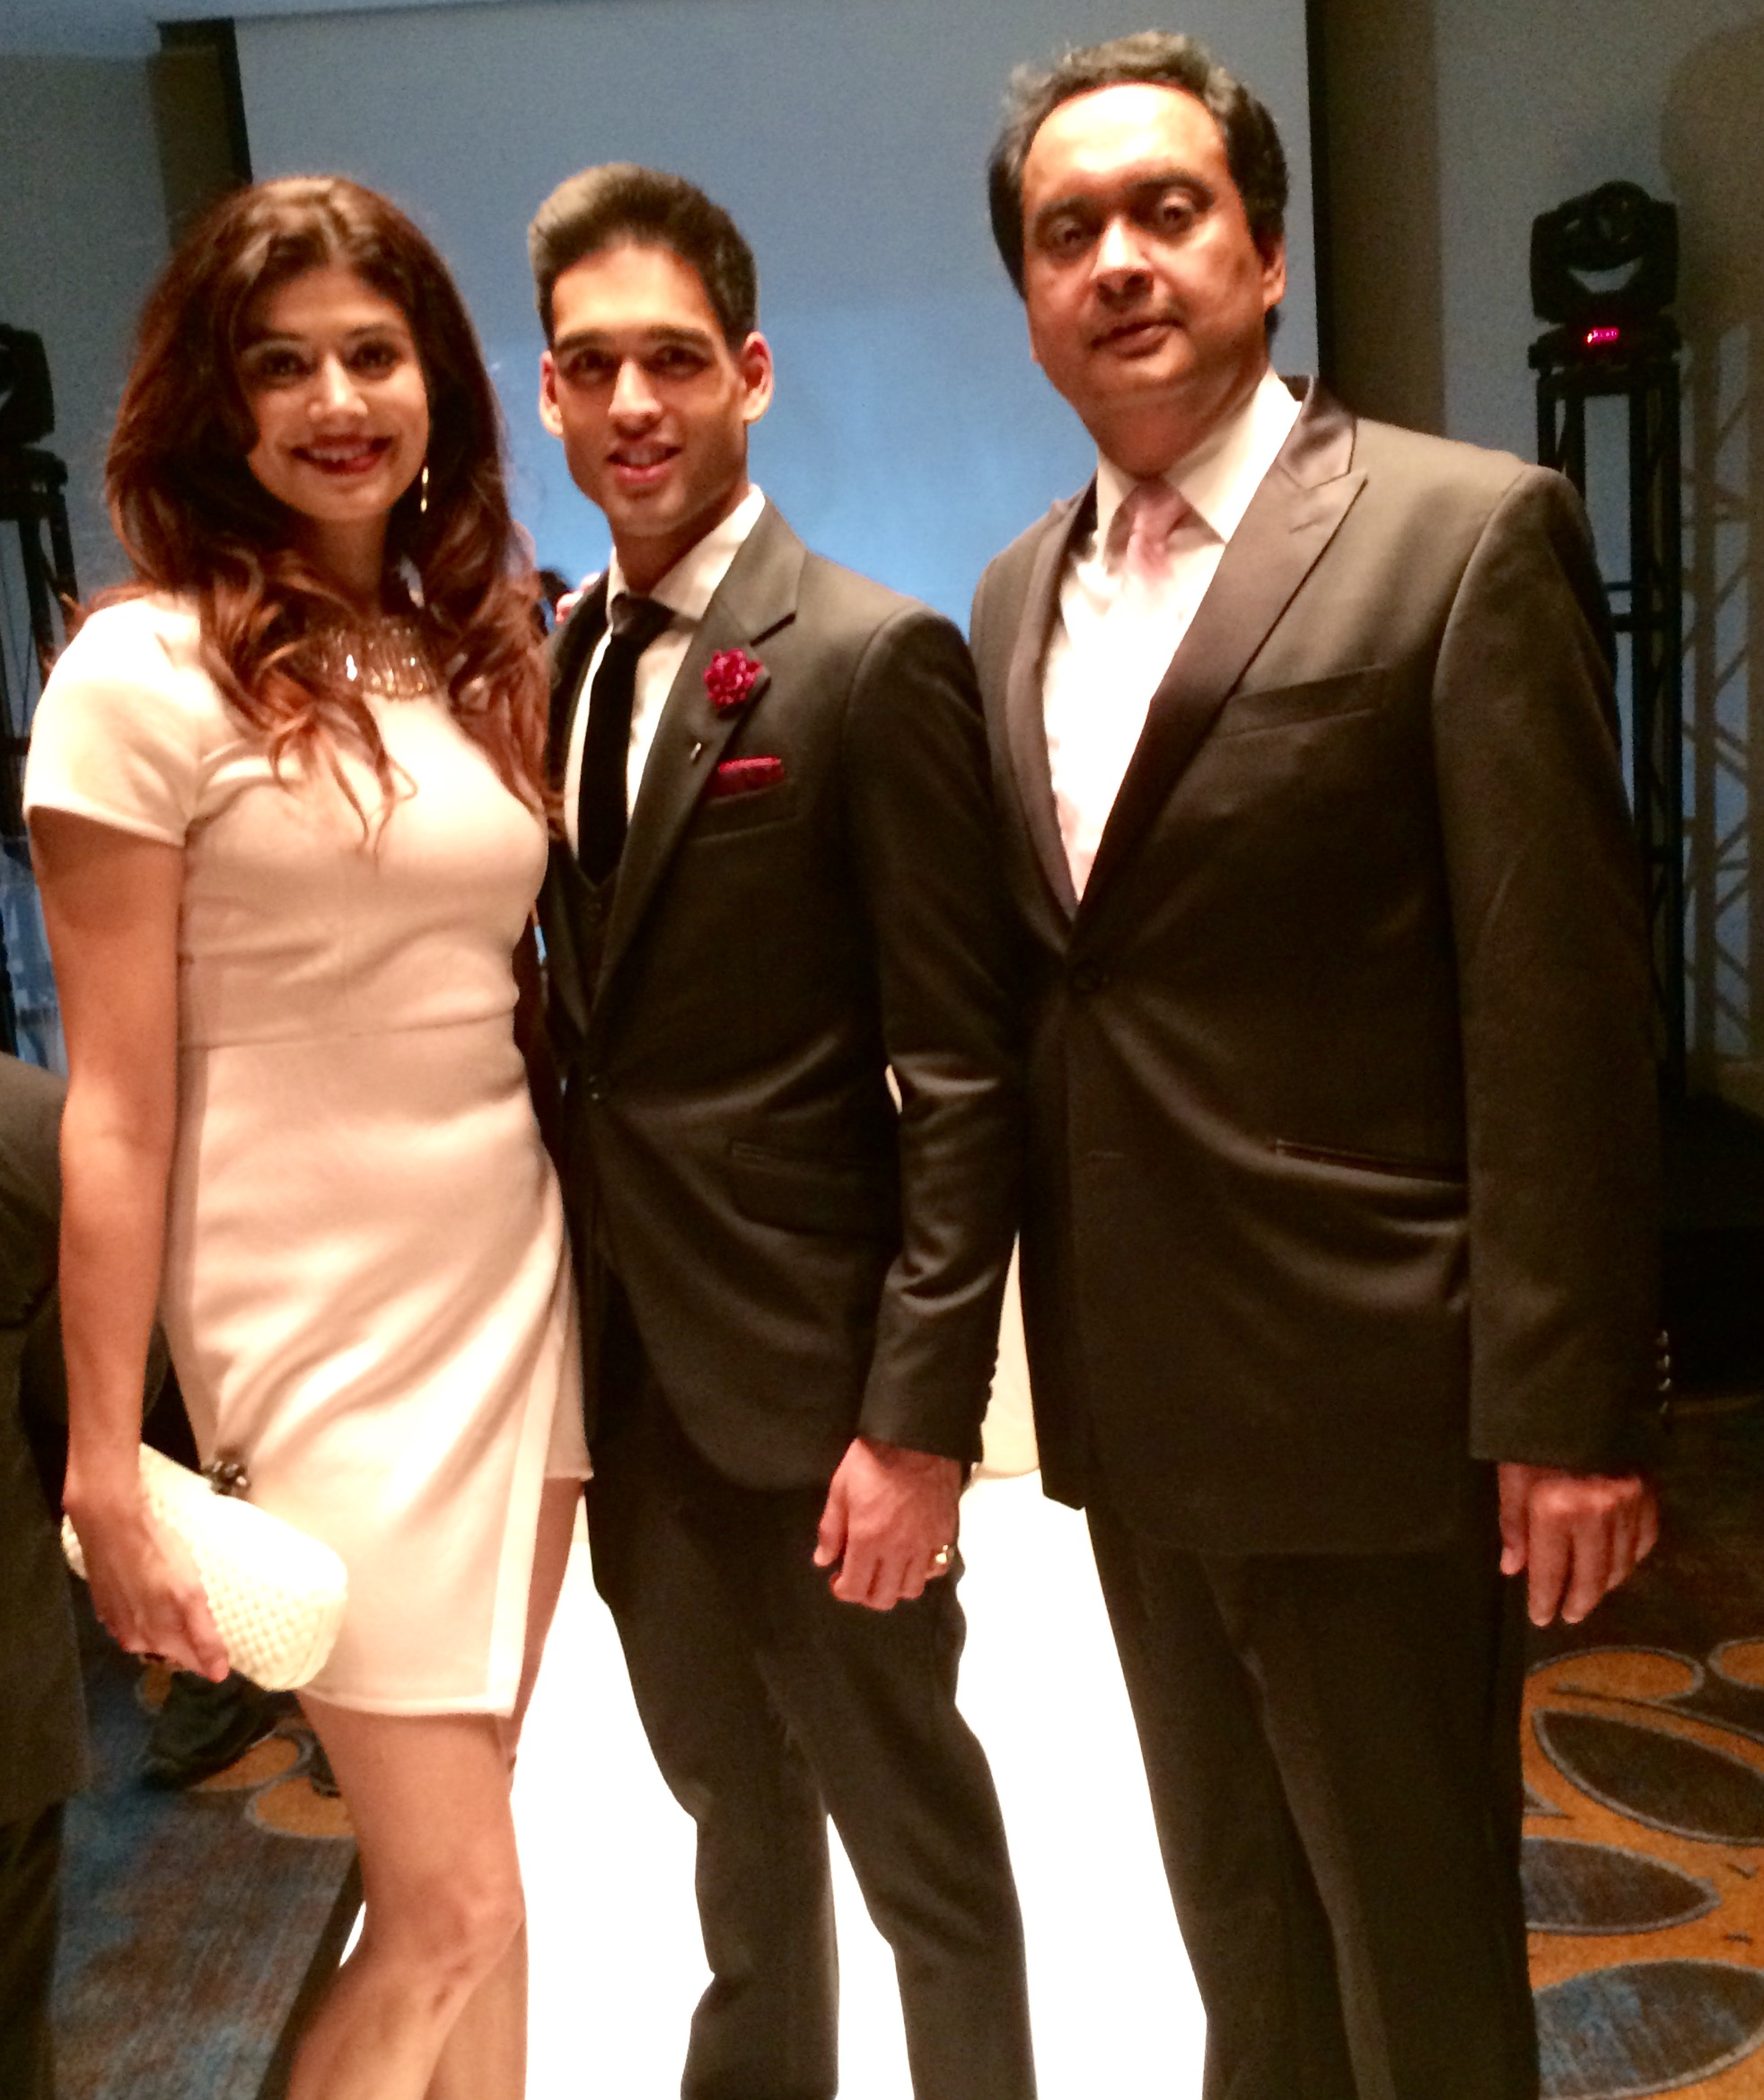 Pooja Batra,  Sid Mallya and Mr. Randeep Dhillon CEO, Miss Duniya 2015 attended the launch party of Miss Duniya Global Pageant 2015, Los Angeles, California